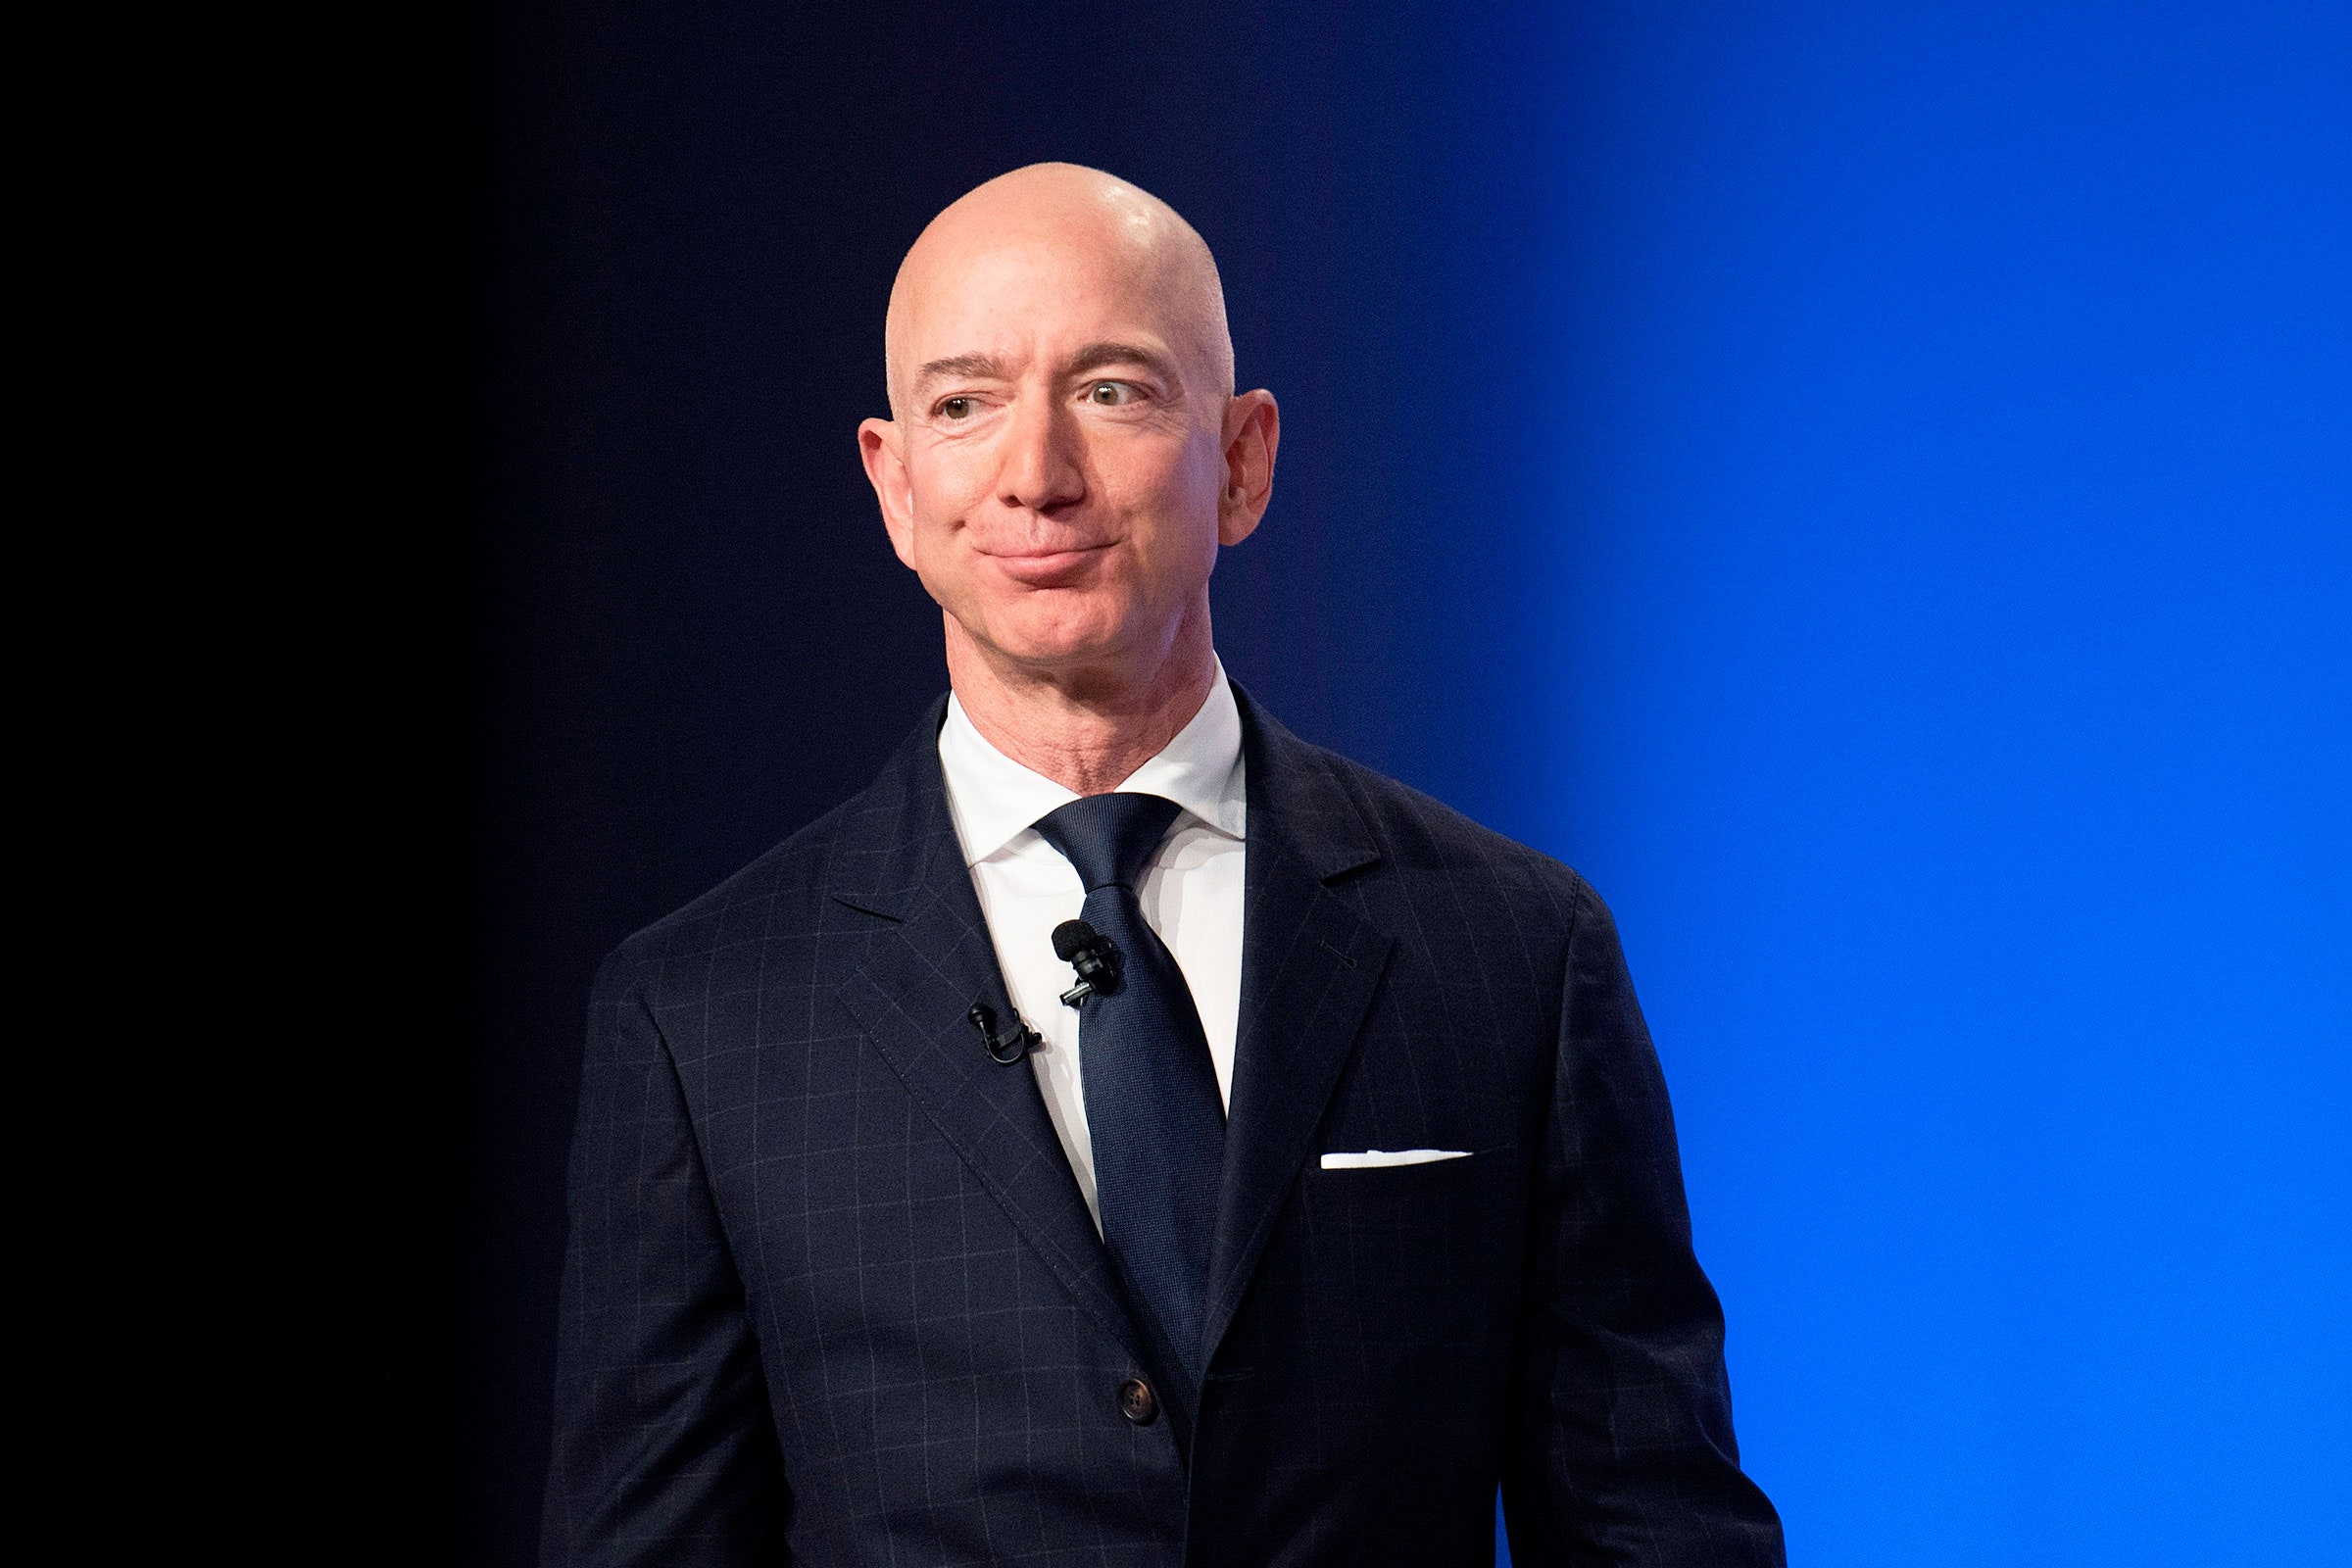 Bezos' Departure as CEO Shows Amazon Is a Cloud Company Now